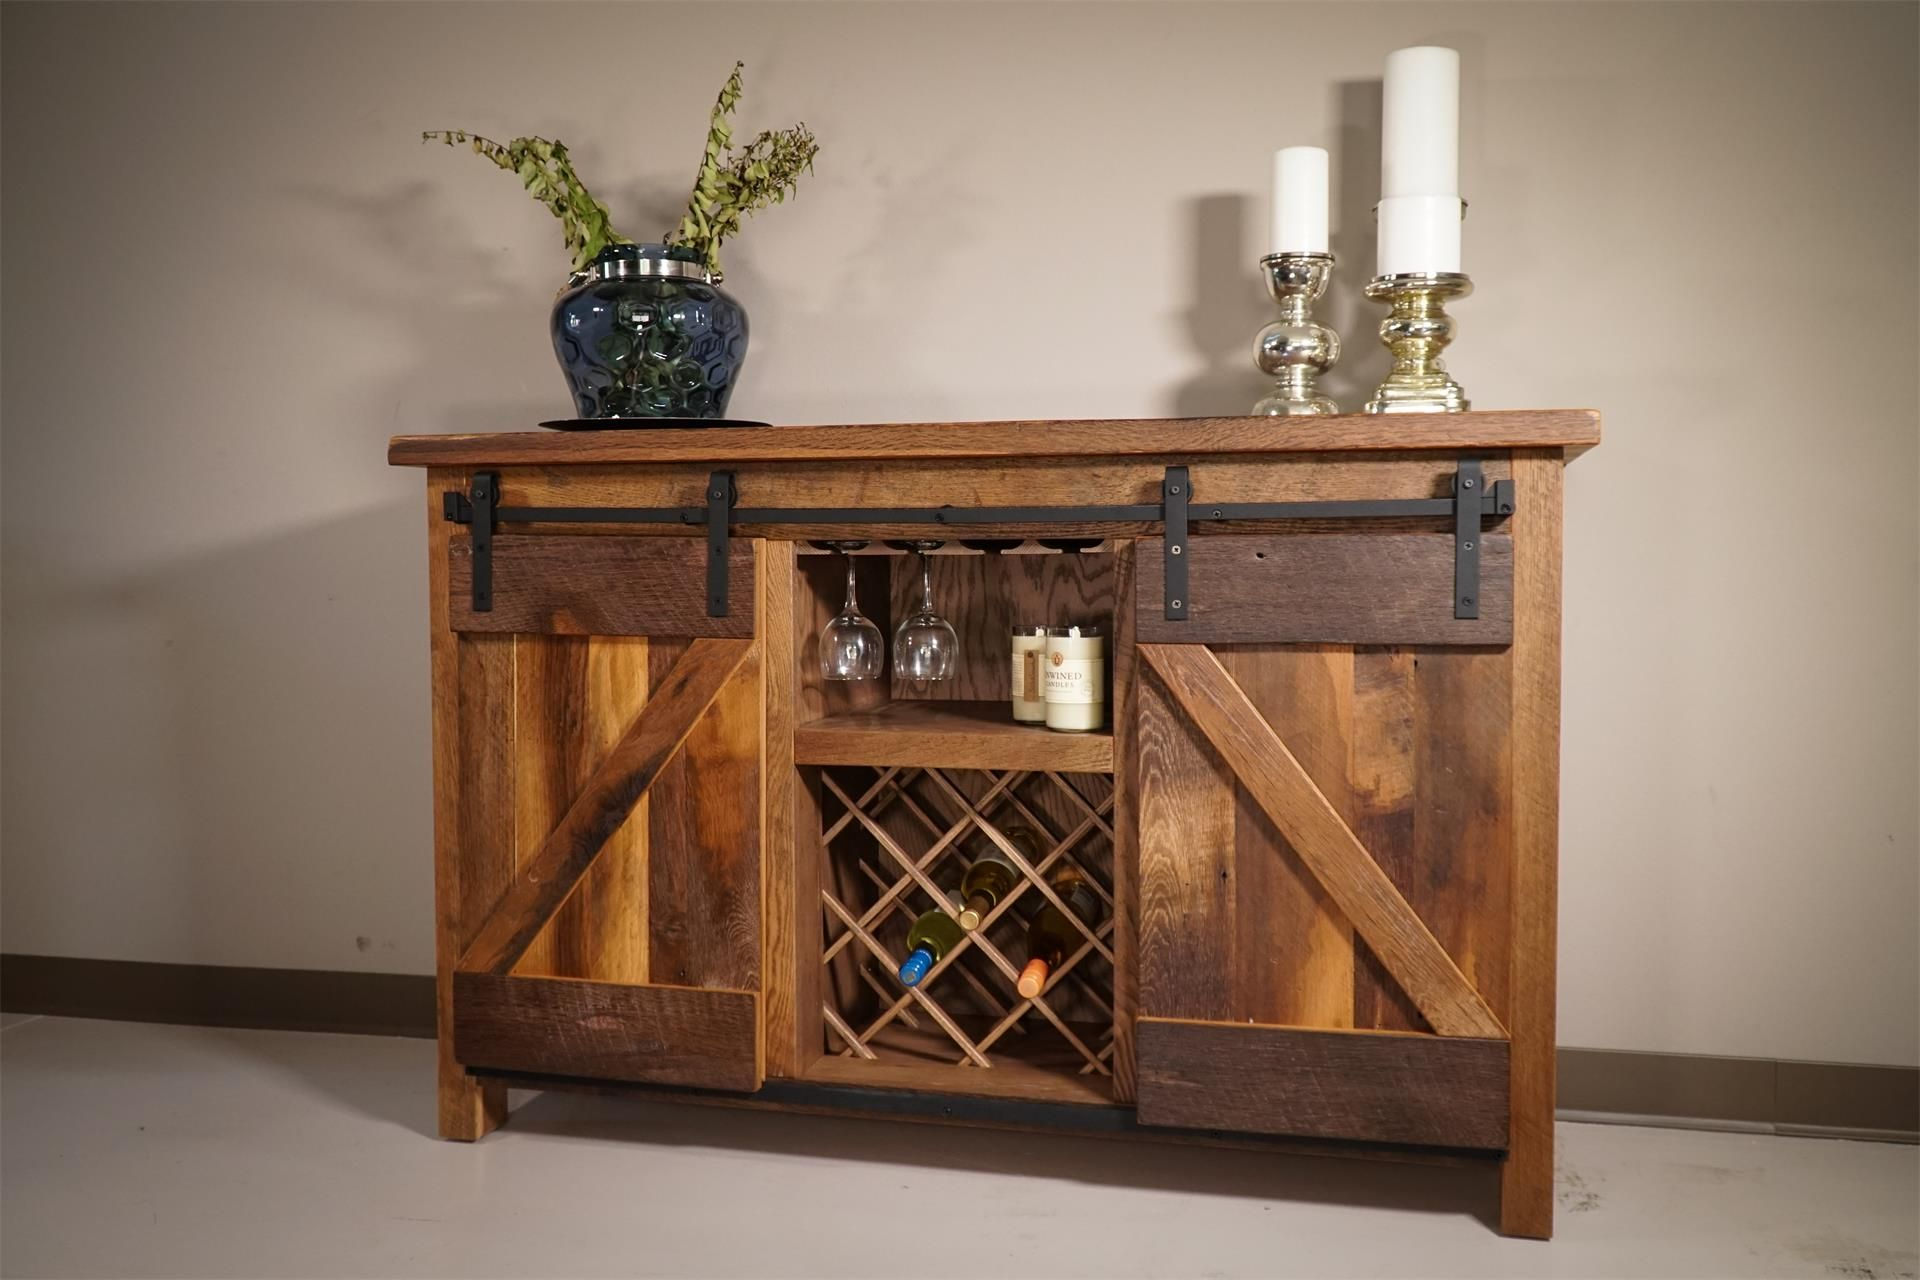 Pleasing Amish Reclaimed Oak Wood Sliding Barn Door Buffet Home Interior And Landscaping Spoatsignezvosmurscom